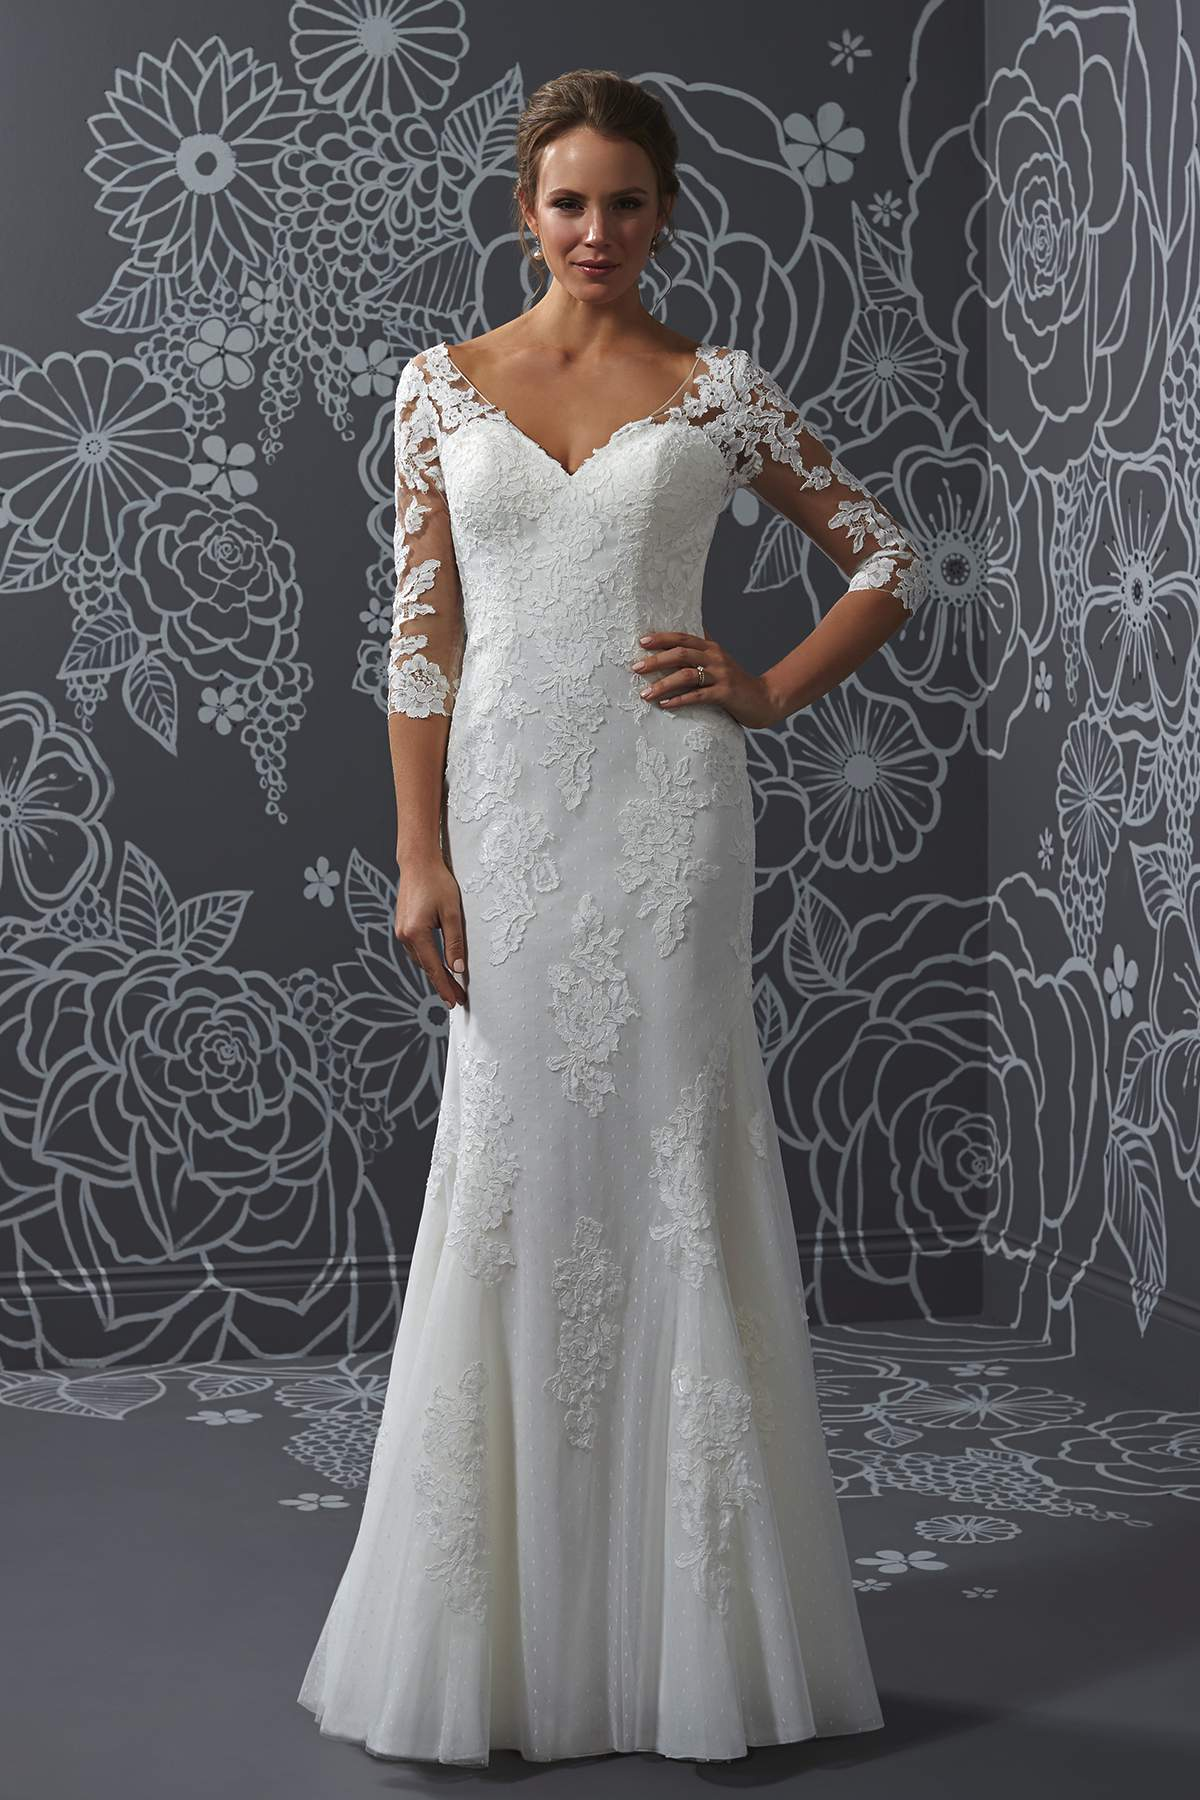 Clara by Romantica of Devon - Find Your Dream Dress